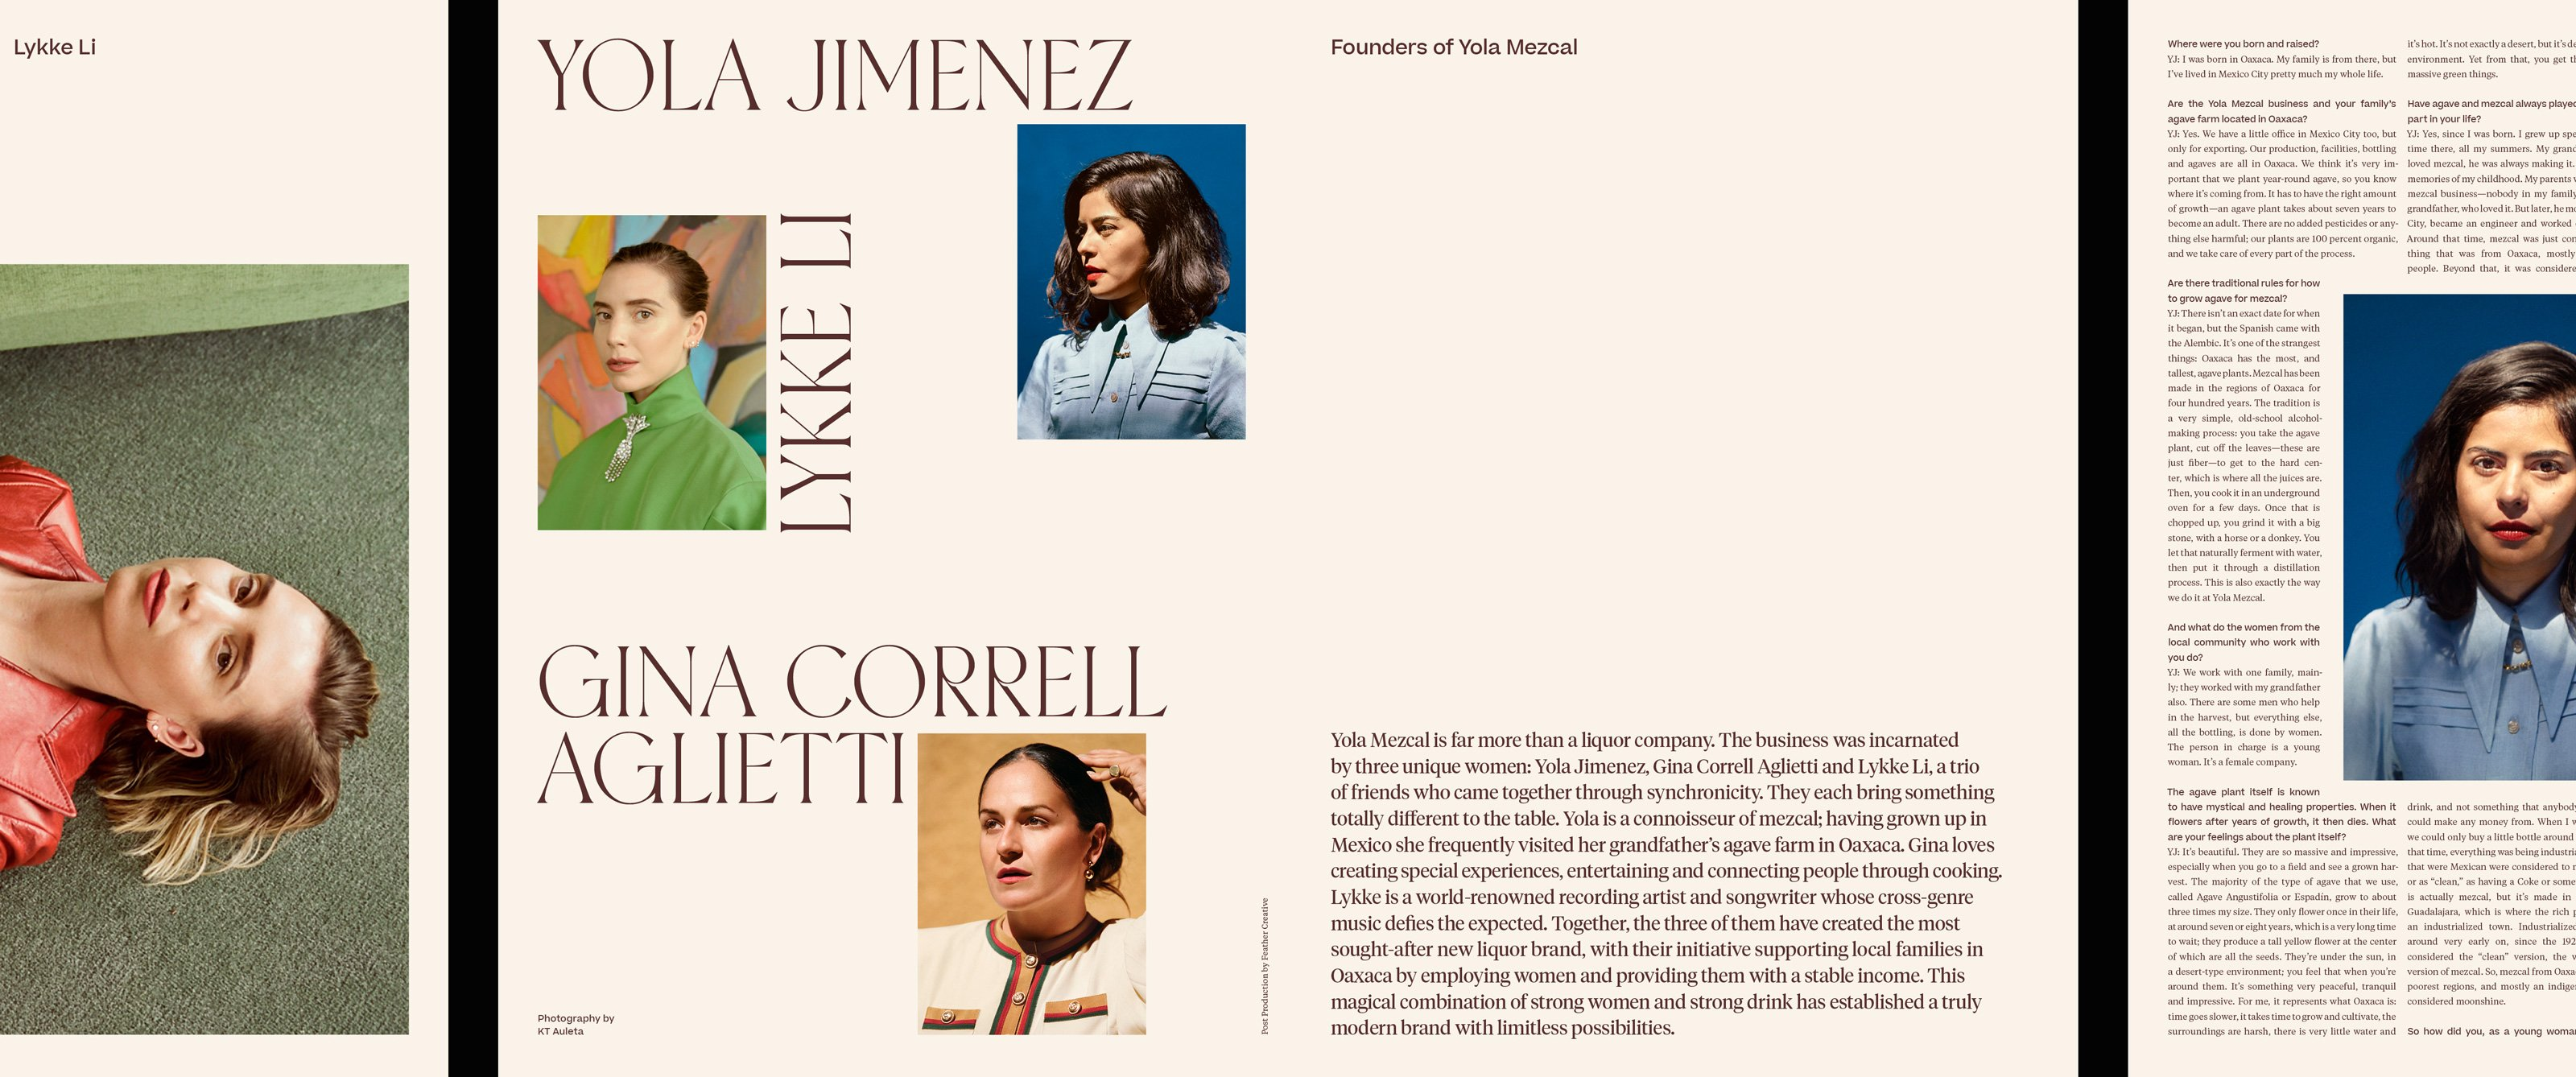 Yola Jimenez, Lykke Li, and Gina Correll Aglietti spread in Romance Journal Issue 03. Romance Journal issue 03 cover – Creation. Publication design, art direction, print design, interviews by RoAndCo